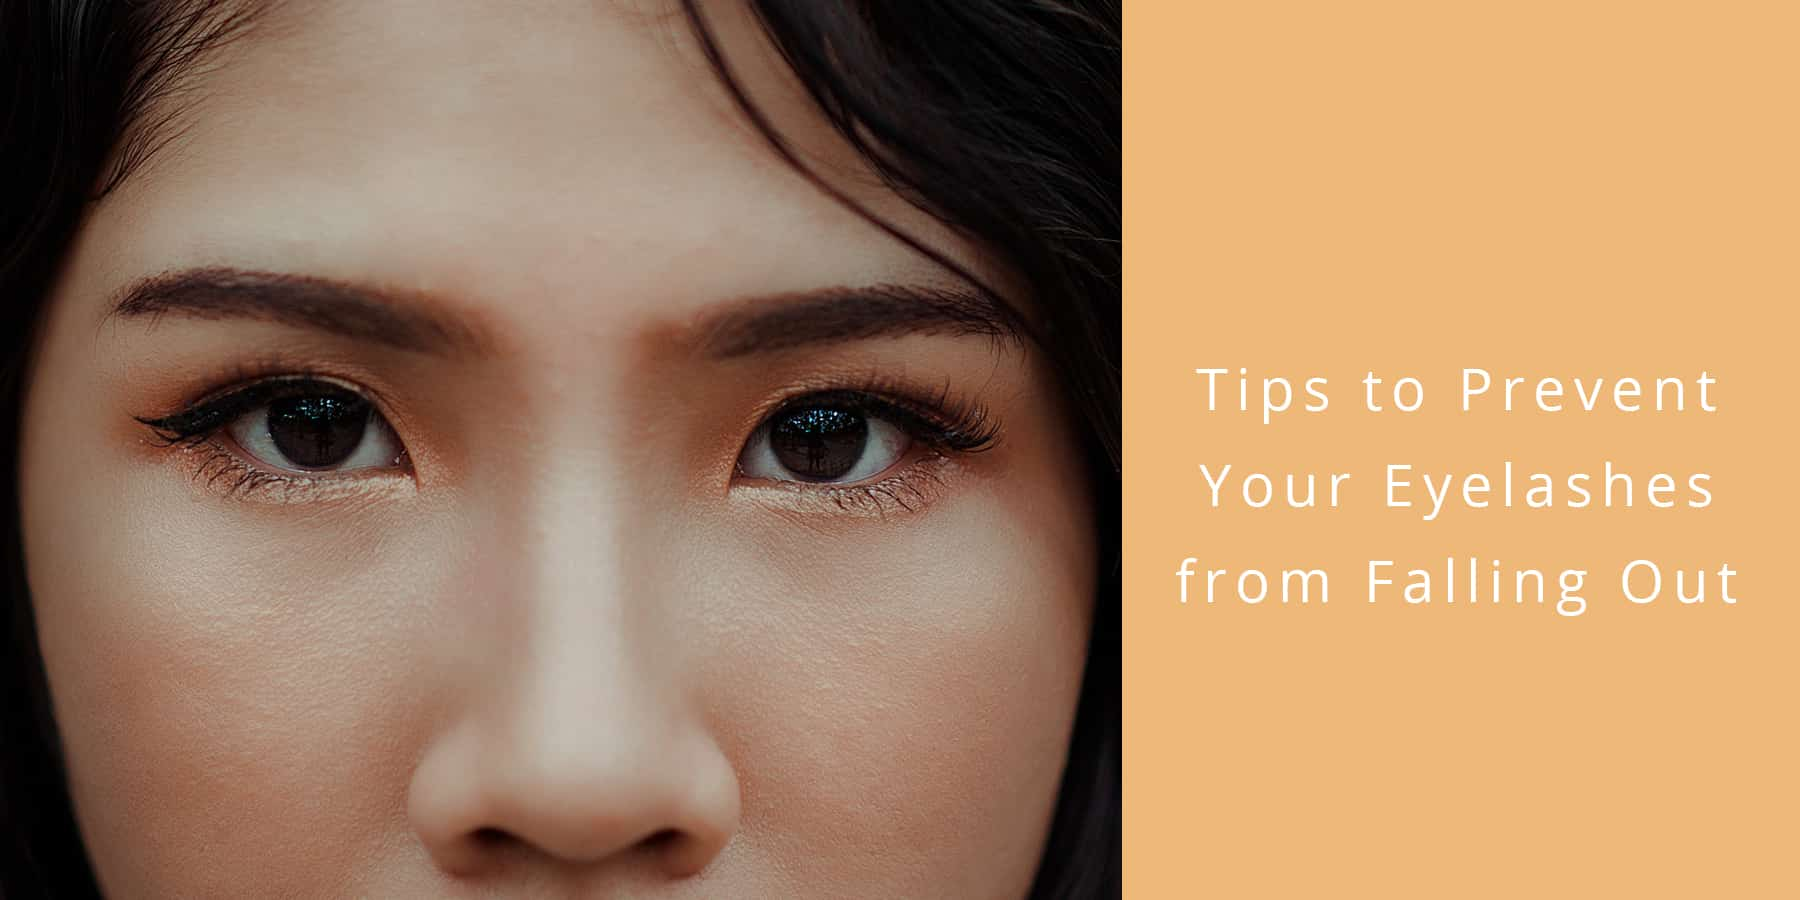 7 Tips to Prevent Your Eyelashes from Falling Out